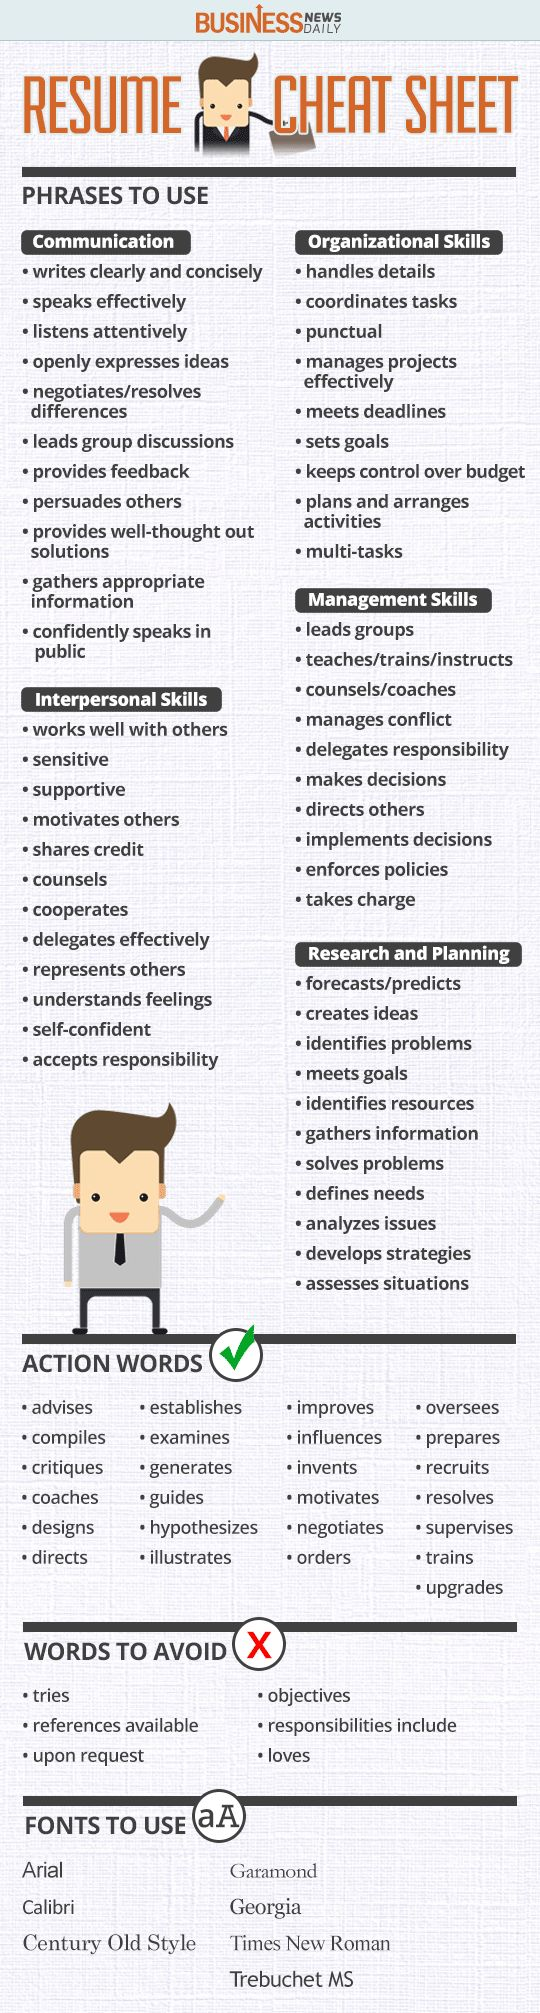 Opposenewapstandardsus  Winning  Ideas About Resume On Pinterest  Cv Format Resume Cv And  With Exquisite Resume Cheat Sheet Infographic Andrews Almost Done With A Complete Unit On Employment Which With Amusing Elementary School Teacher Resume Also Plumber Resume In Addition Examples Of Bad Resumes And Free Online Resumes As Well As Purchasing Manager Resume Additionally Cover Letter For Resumes From Pinterestcom With Opposenewapstandardsus  Exquisite  Ideas About Resume On Pinterest  Cv Format Resume Cv And  With Amusing Resume Cheat Sheet Infographic Andrews Almost Done With A Complete Unit On Employment Which And Winning Elementary School Teacher Resume Also Plumber Resume In Addition Examples Of Bad Resumes From Pinterestcom